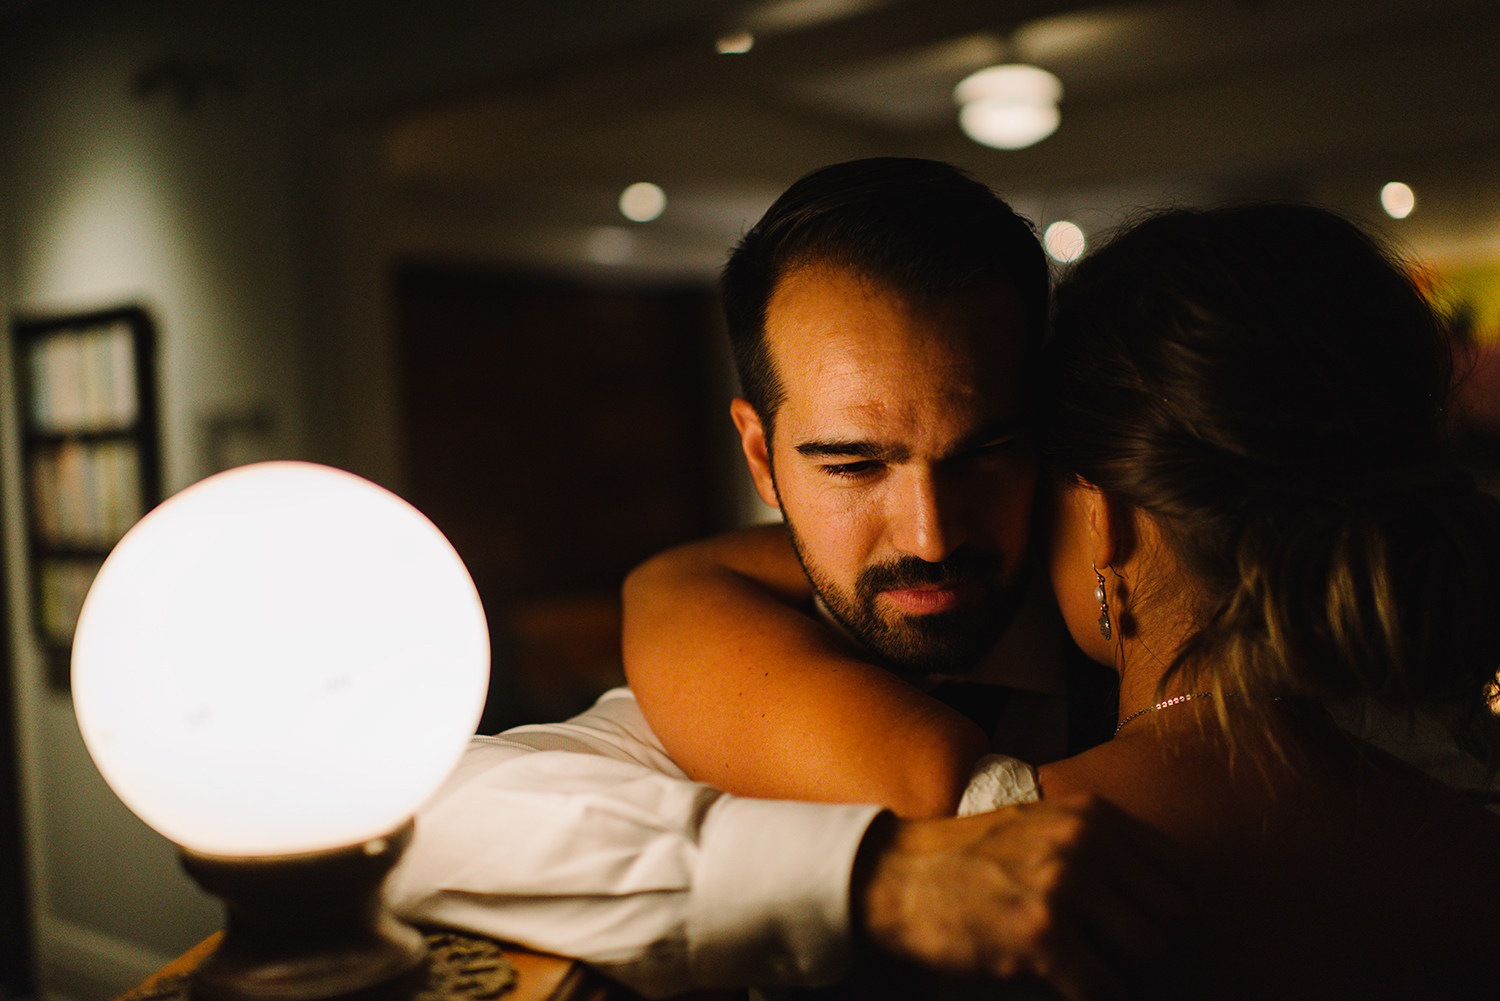 Prince-Edward-County-Wedding-Photographer-Drake-Hotel-Vintage-Wedding-Venue-Bride-and-Groom-intimate-moment-portrait.jpg